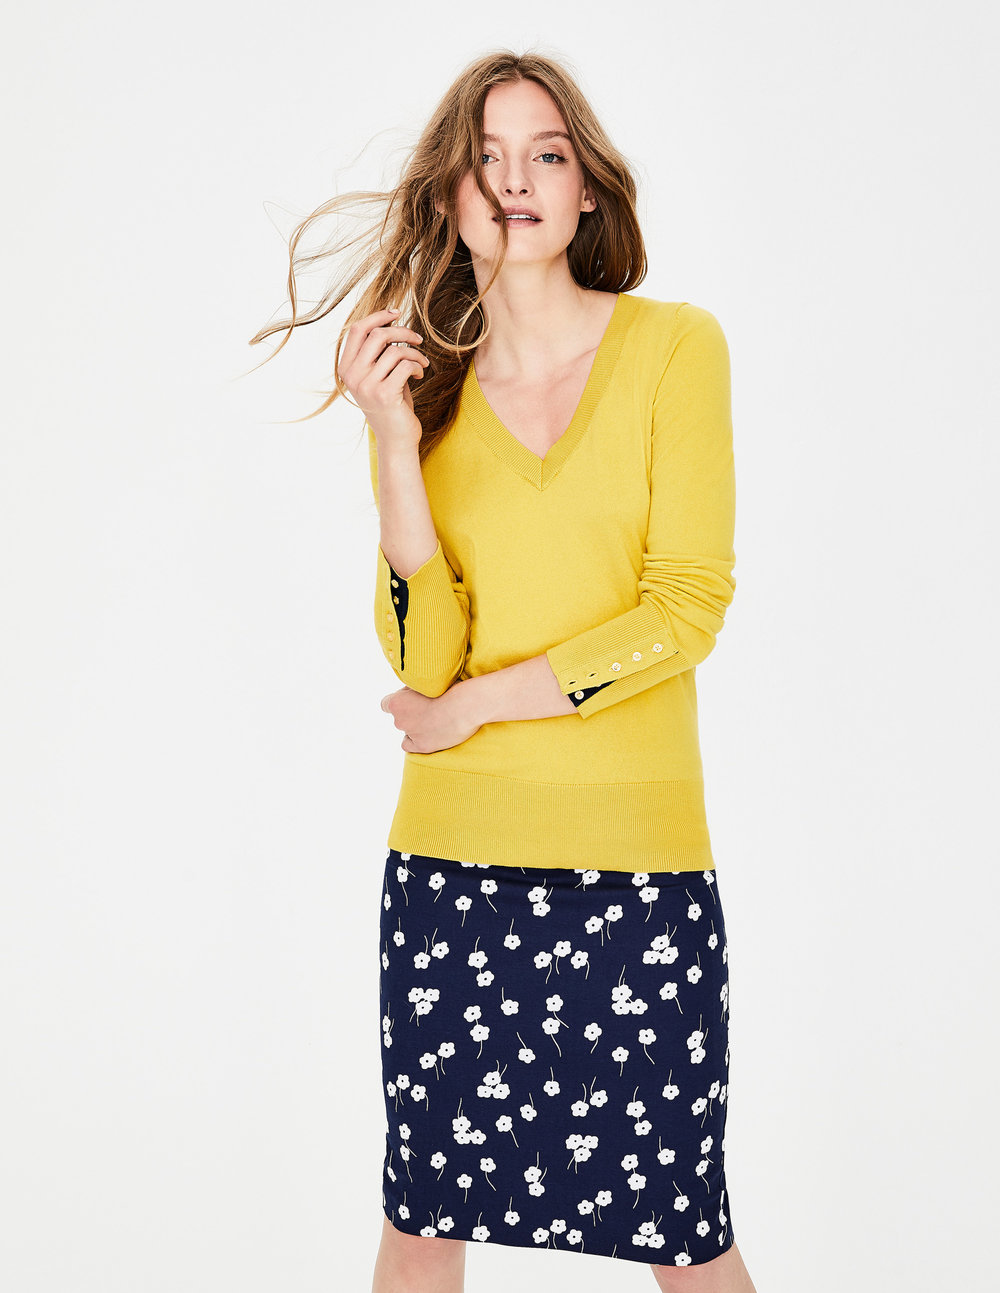 TILDA V NECK SWEATER. Available in multiple colors. Boden. Was $80.00. Now $48.00 To $80.00.